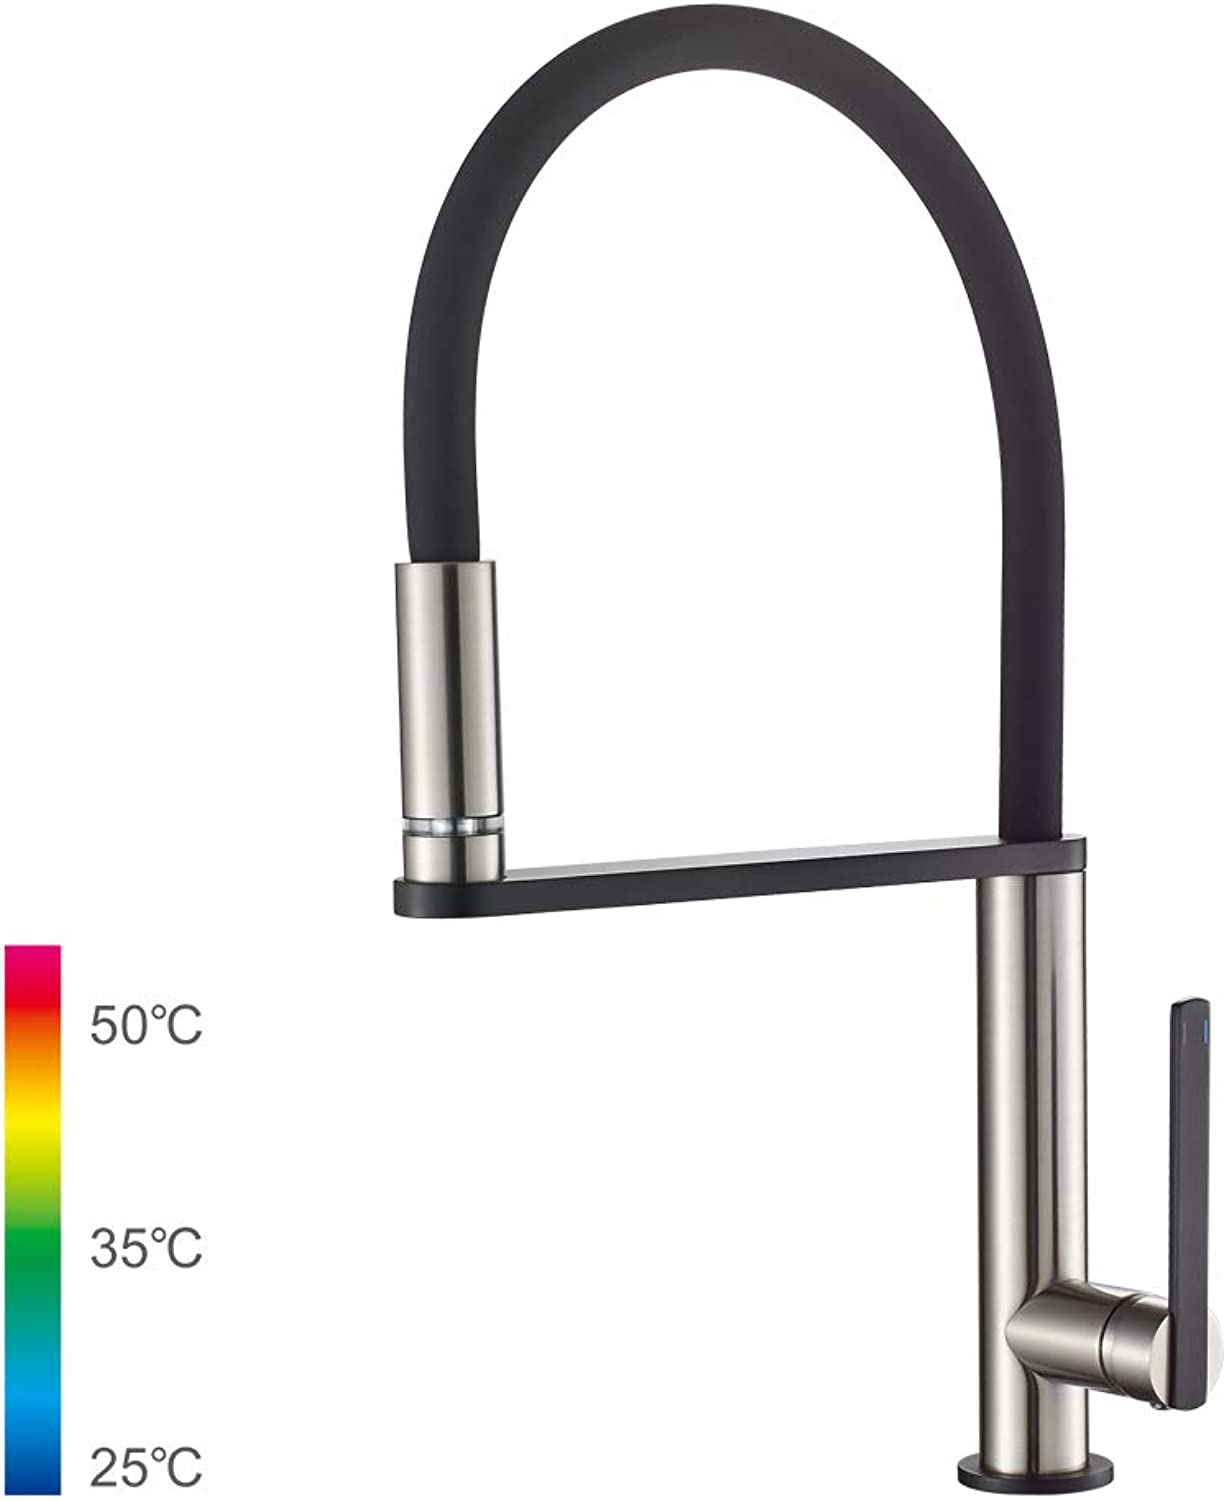 GRIFEMA DOVER-G14002A Pull - Out Kitchen Mixer Taps with Built-in LED Light Spout, 3 8 Inch Hose, Brushed Nickle Black